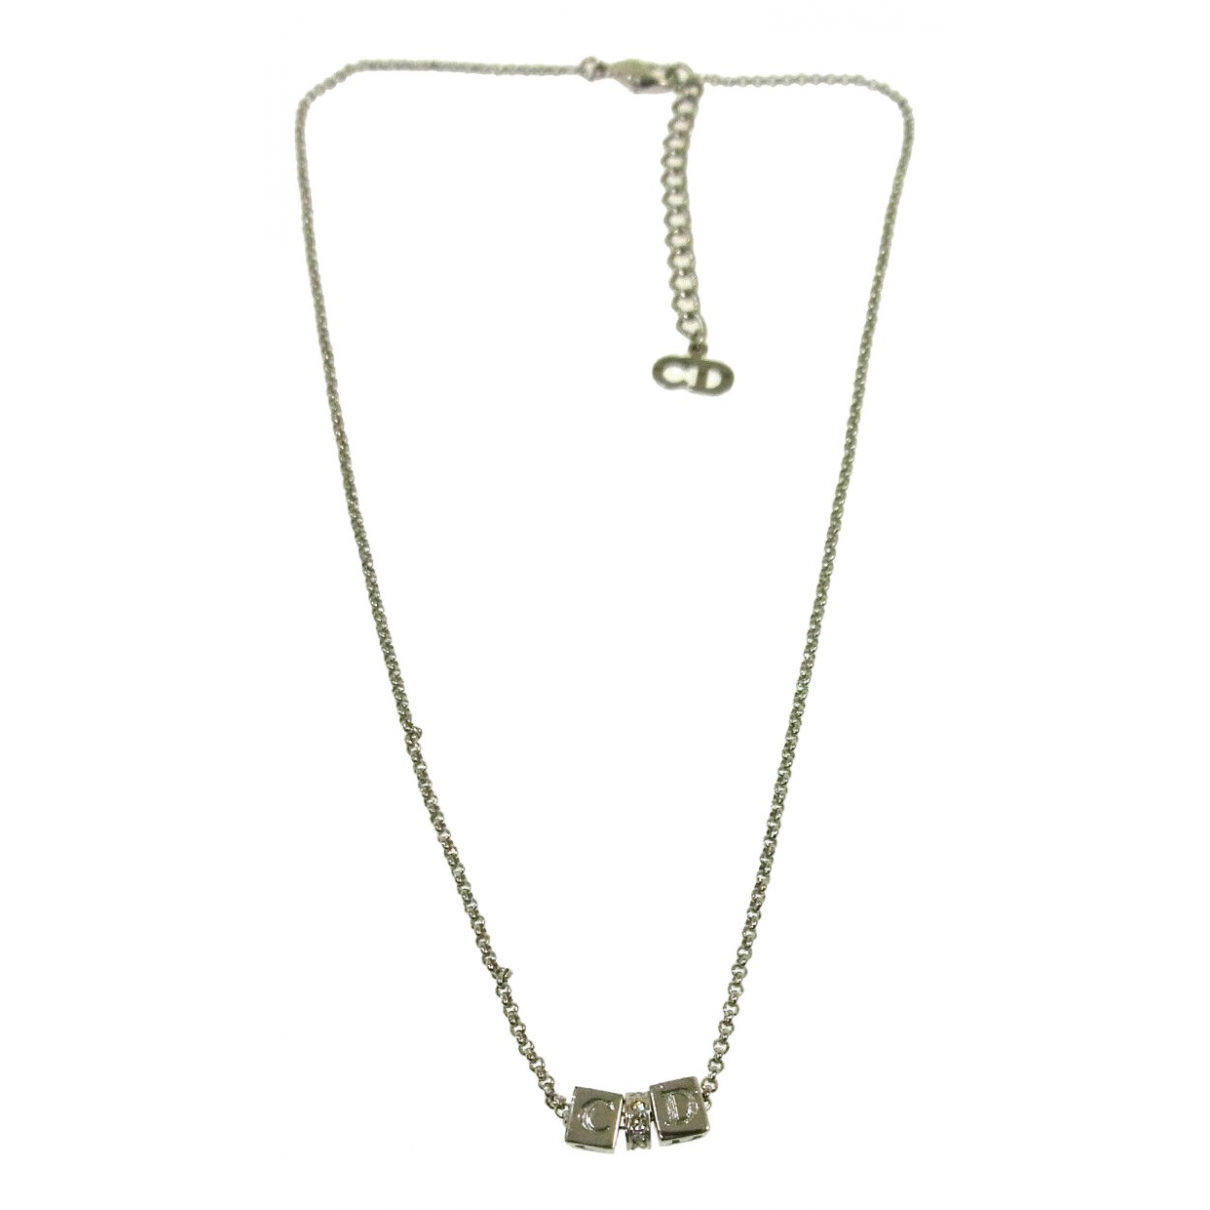 Dior \N Silver Plated necklace for Women \N